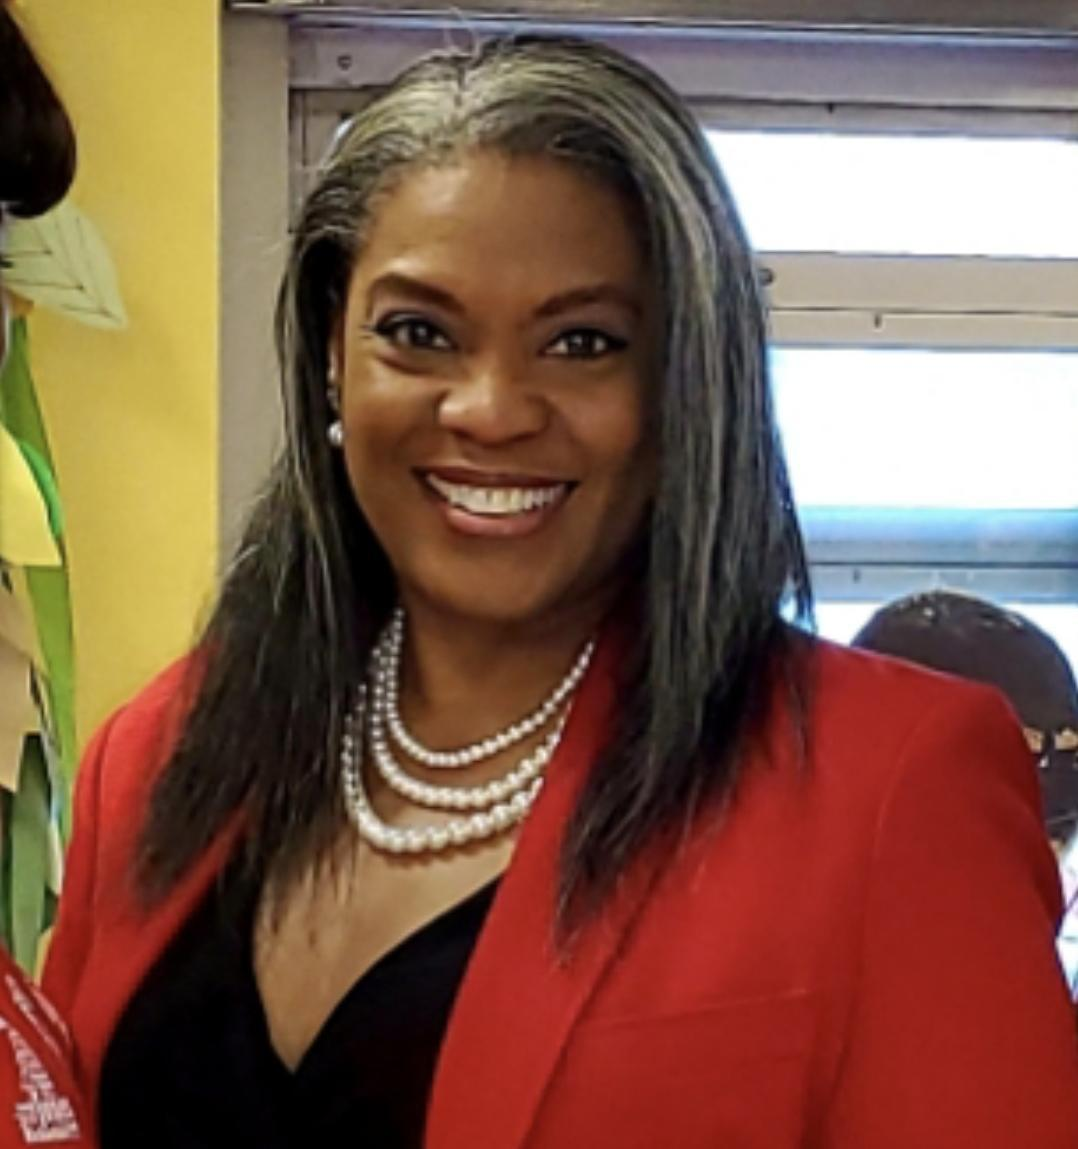 principal belton smiling in a red blazer jacket and pearls